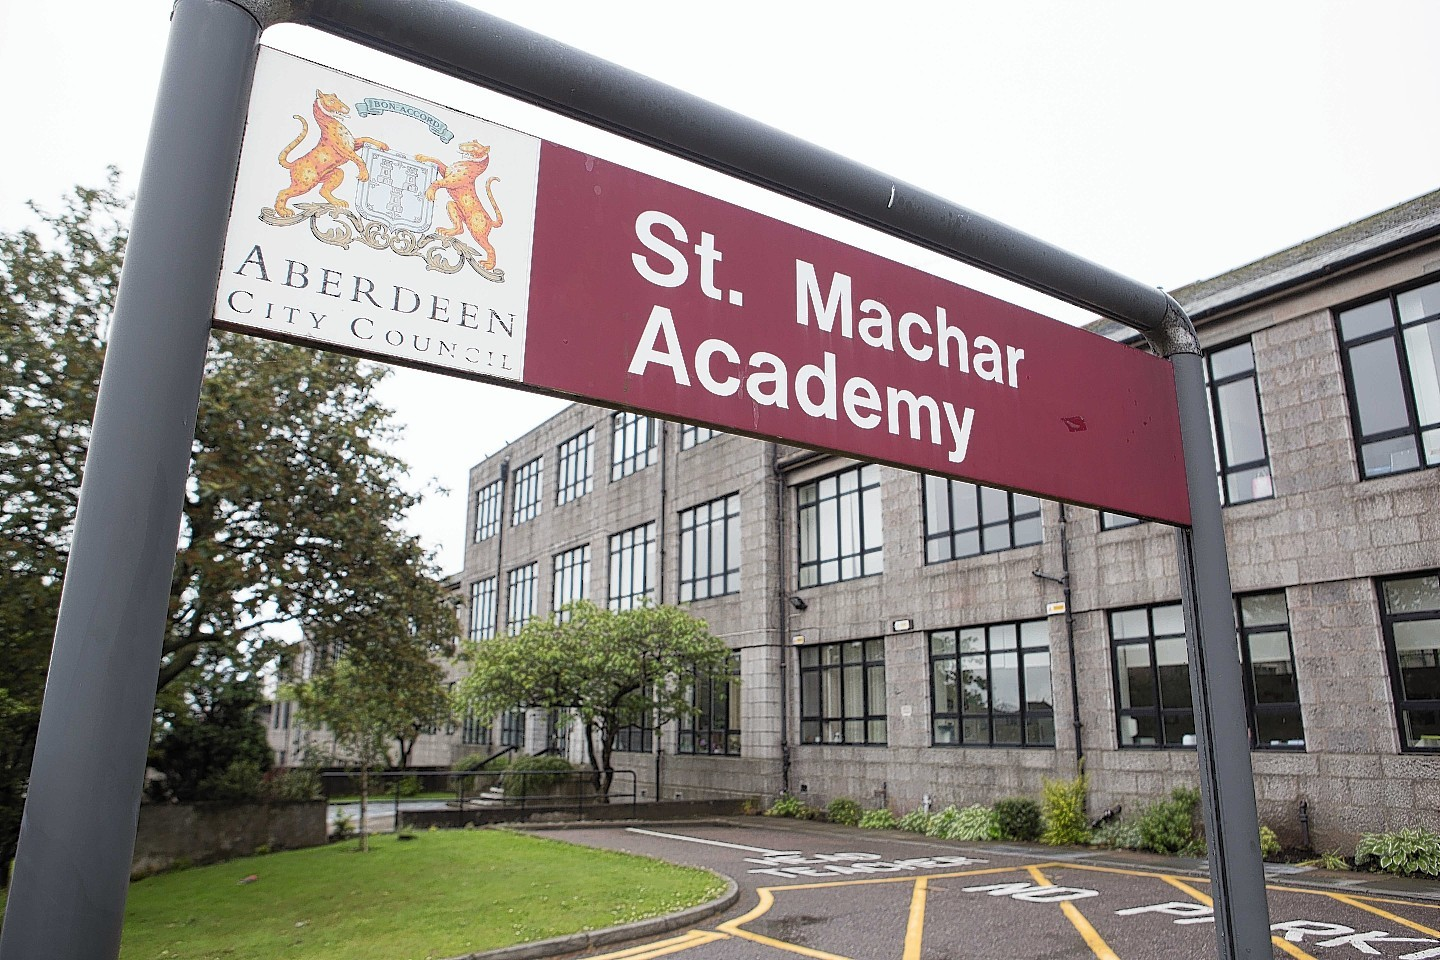 St Machar Academy where the incident allegedly took place.